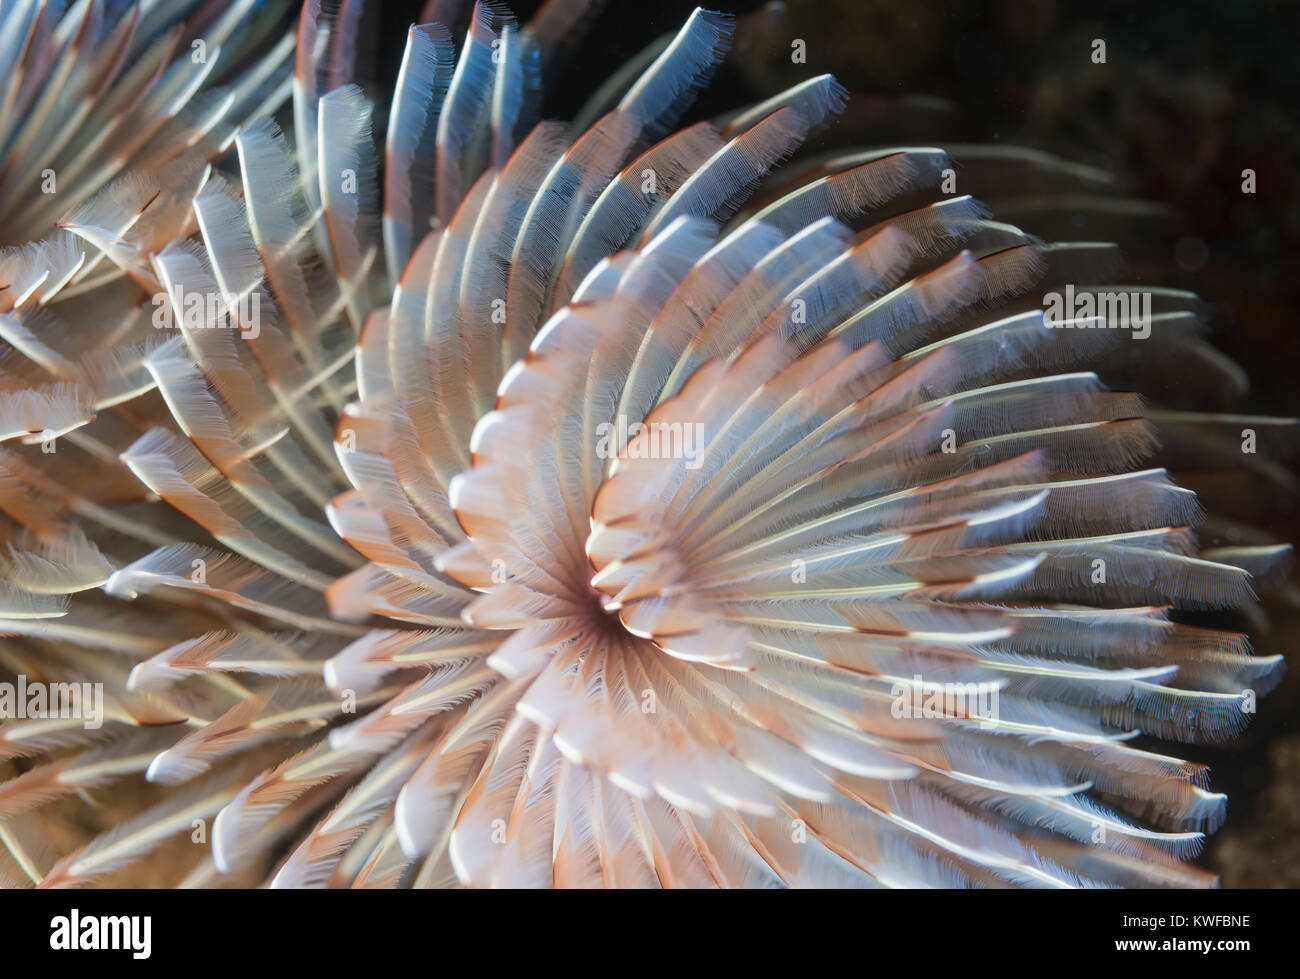 Detail of a tube-dwelling anemone - Stock Image